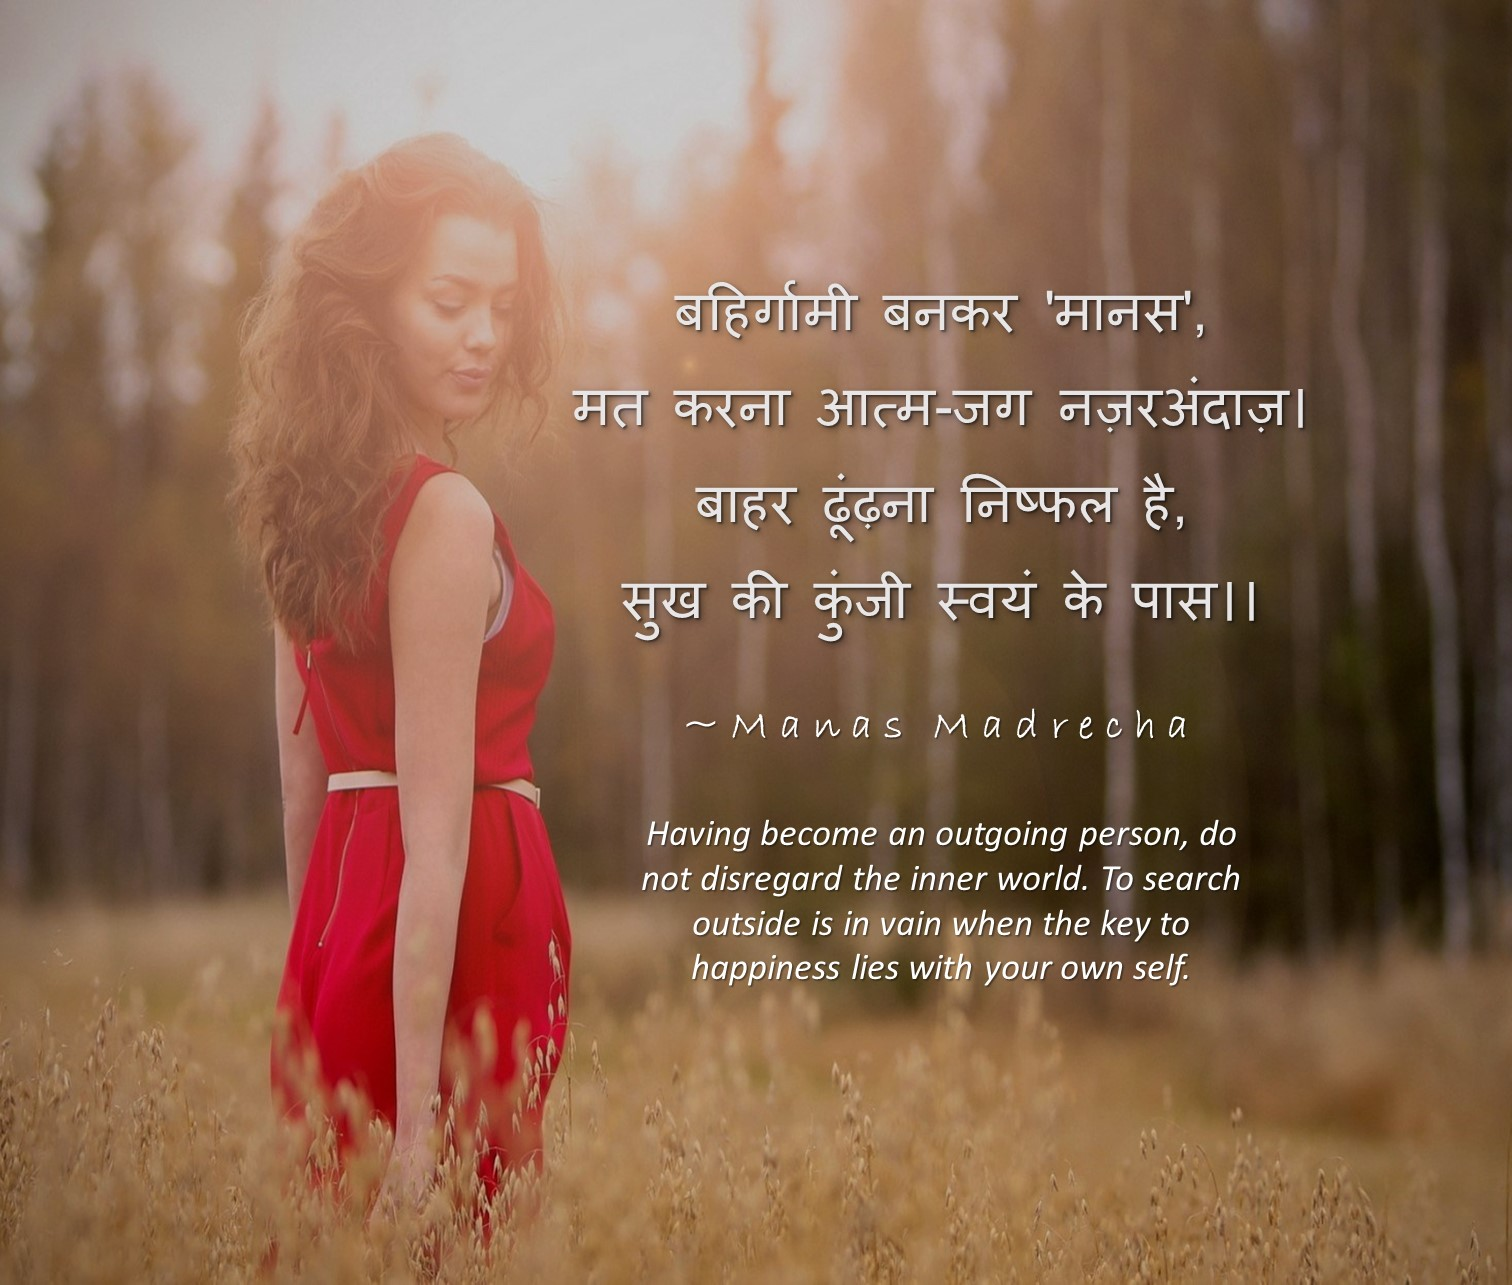 girl in sunshine, girl in nature photography, girl wearing red, hot girl in red, girl mood wallpaper, sad girl in nature, happy girl in nature, girl in forest, alone girl standing, Manas Madrecha, Manas Madrecha blog, simplifying universe, hindi poem on self, hindi quotes, hindi shayari, inspirational poem, inspirational quotes, motivational quotes, first talk about yourself, pehle khud ki baat karo,